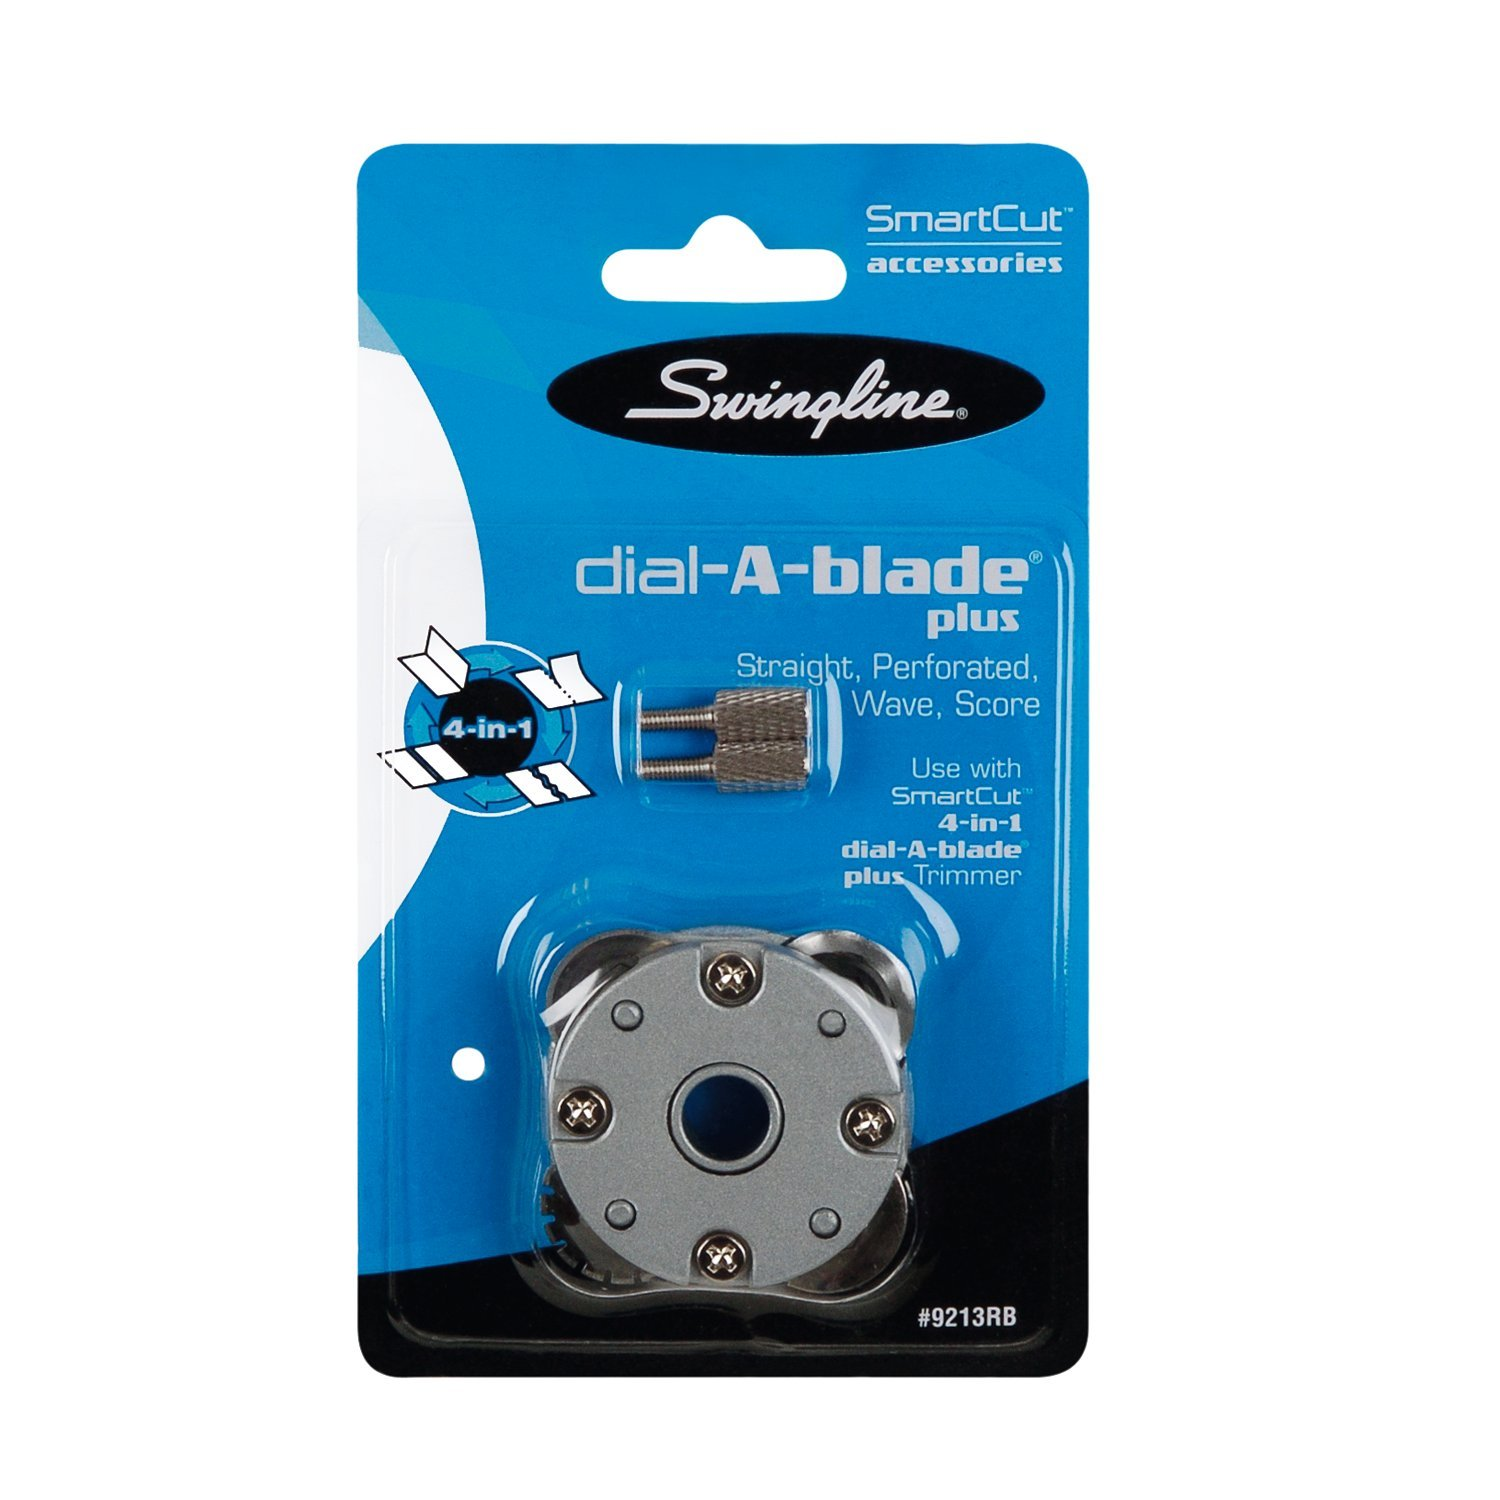 Swingline Paper Trimmer Replacement Blade, for SmartCut 4-in-1 Dial-A-Blade Plus Rotary Trimmer (9213RBA) by Swingline